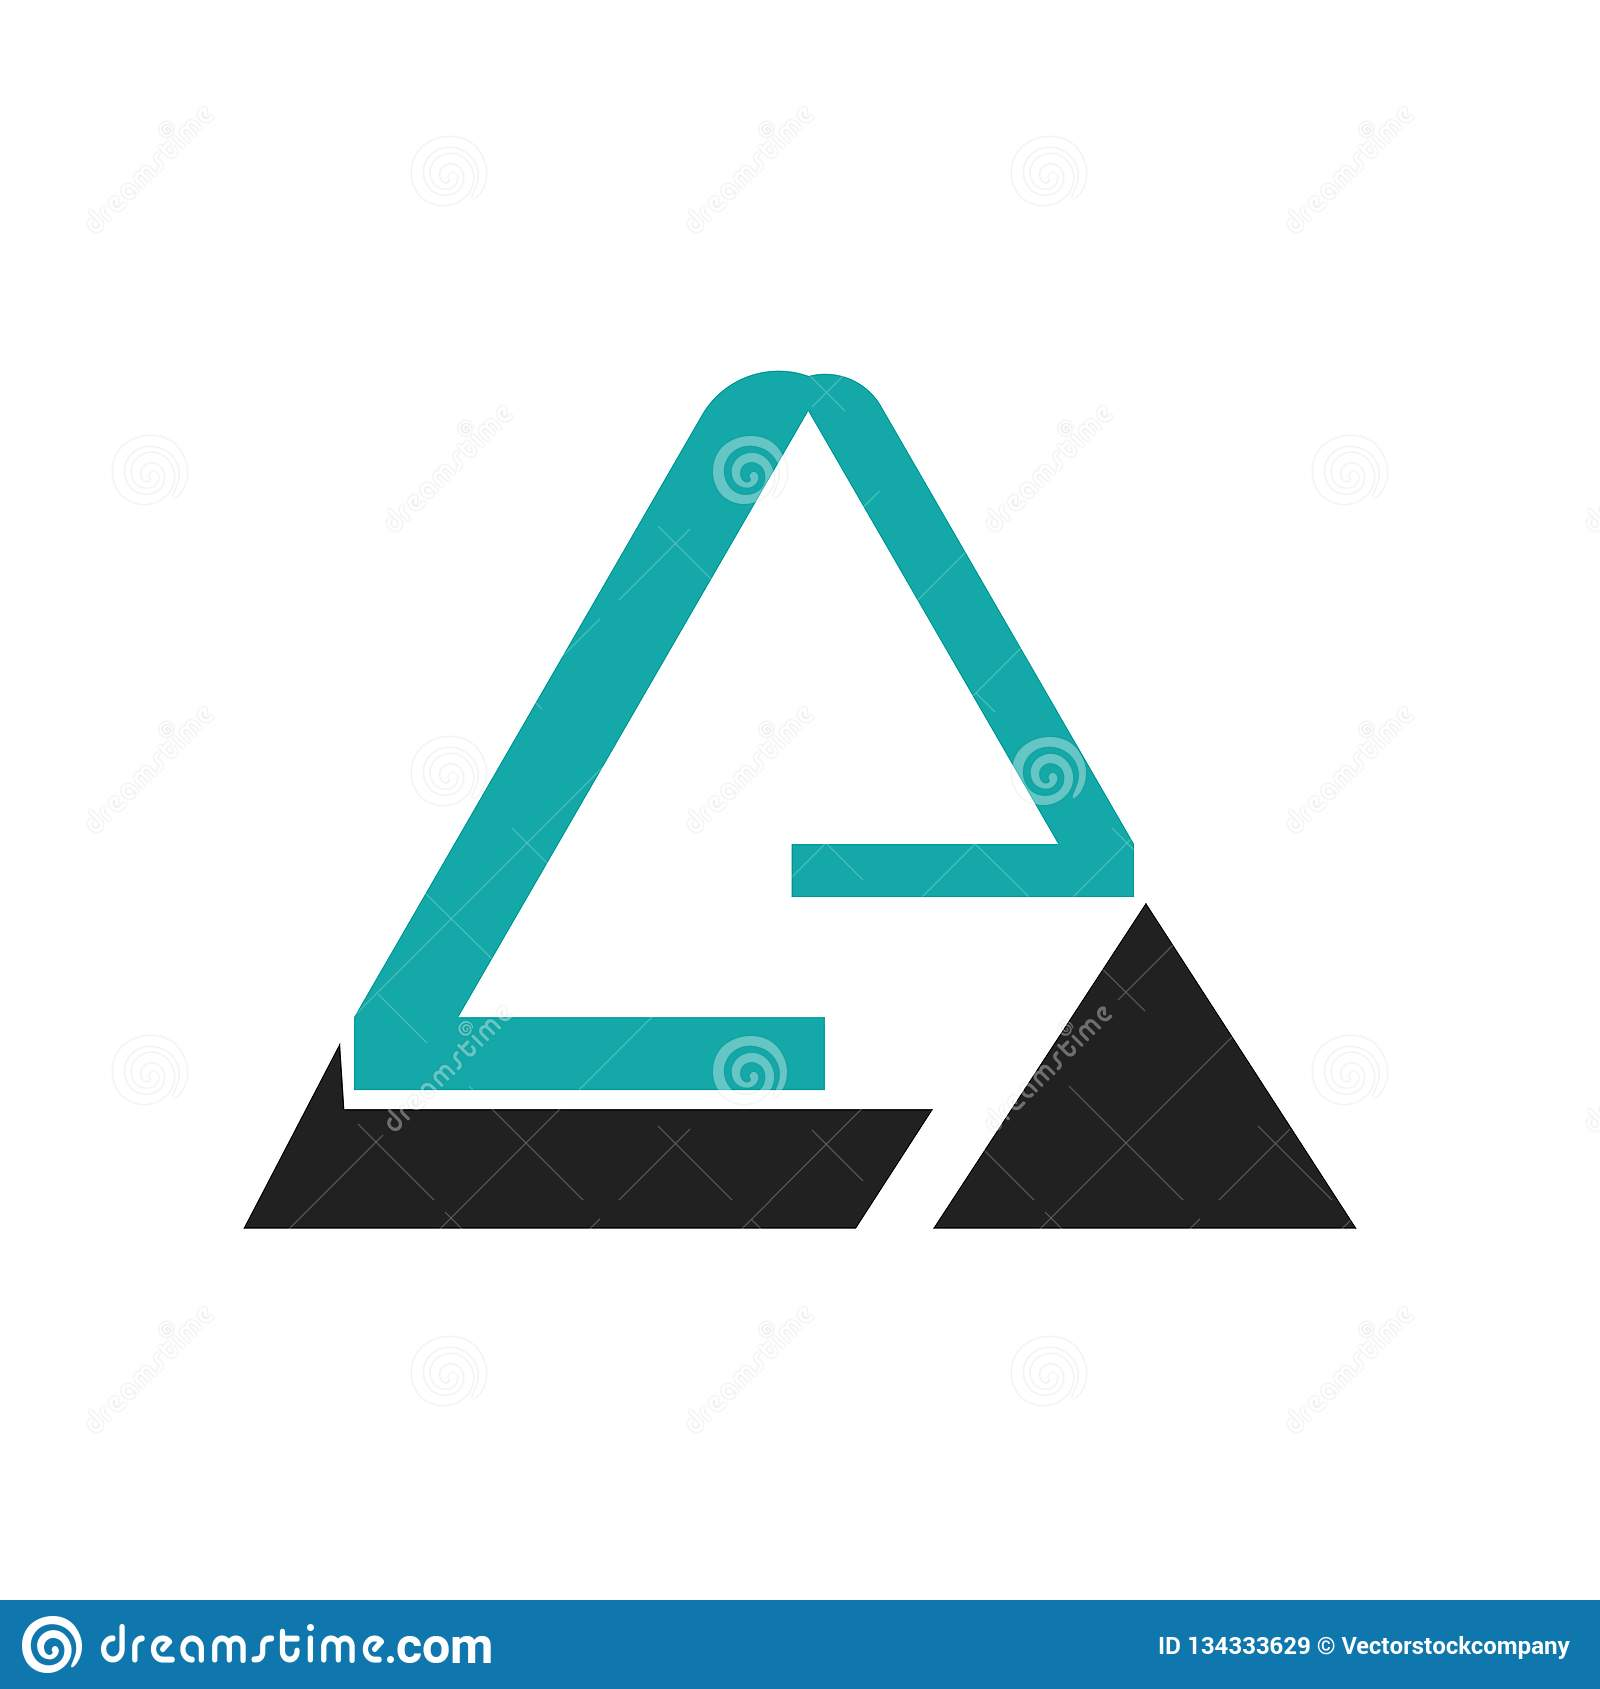 Triangular pyramid graphic icon vector sign and symbol isolated on white background, Triangular pyramid graphic logo concept